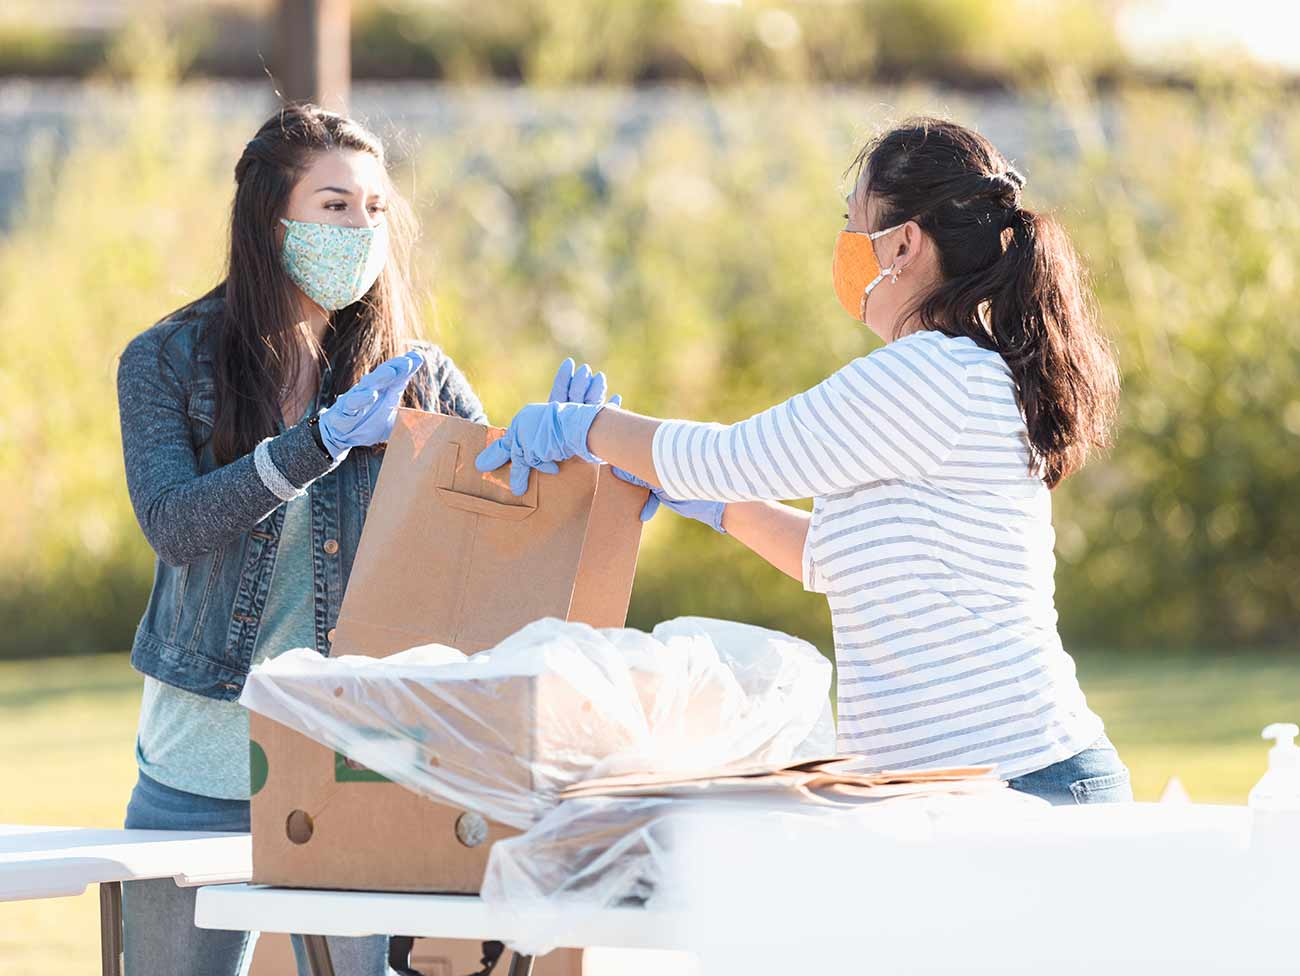 2 women in an outdoor setting wearing masks and latex gloves preparing supplies for distribution